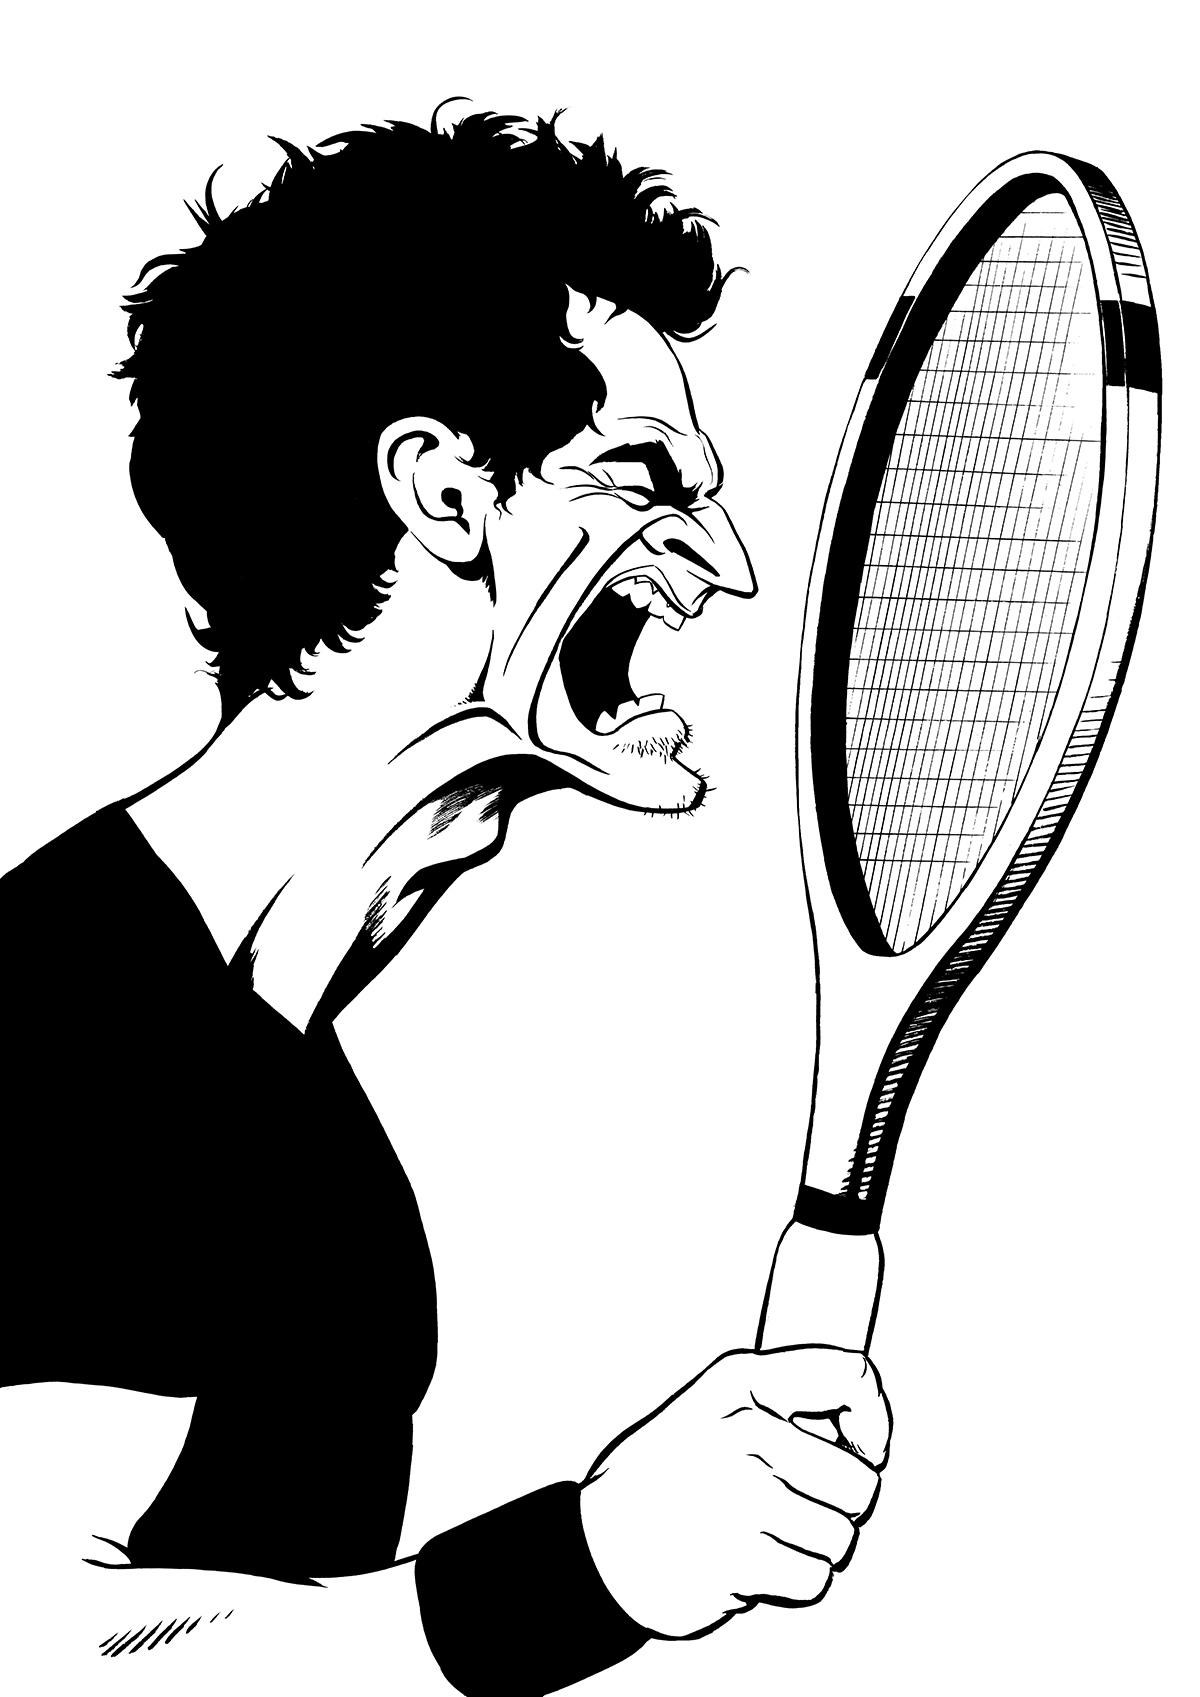 Andy Murray caricature